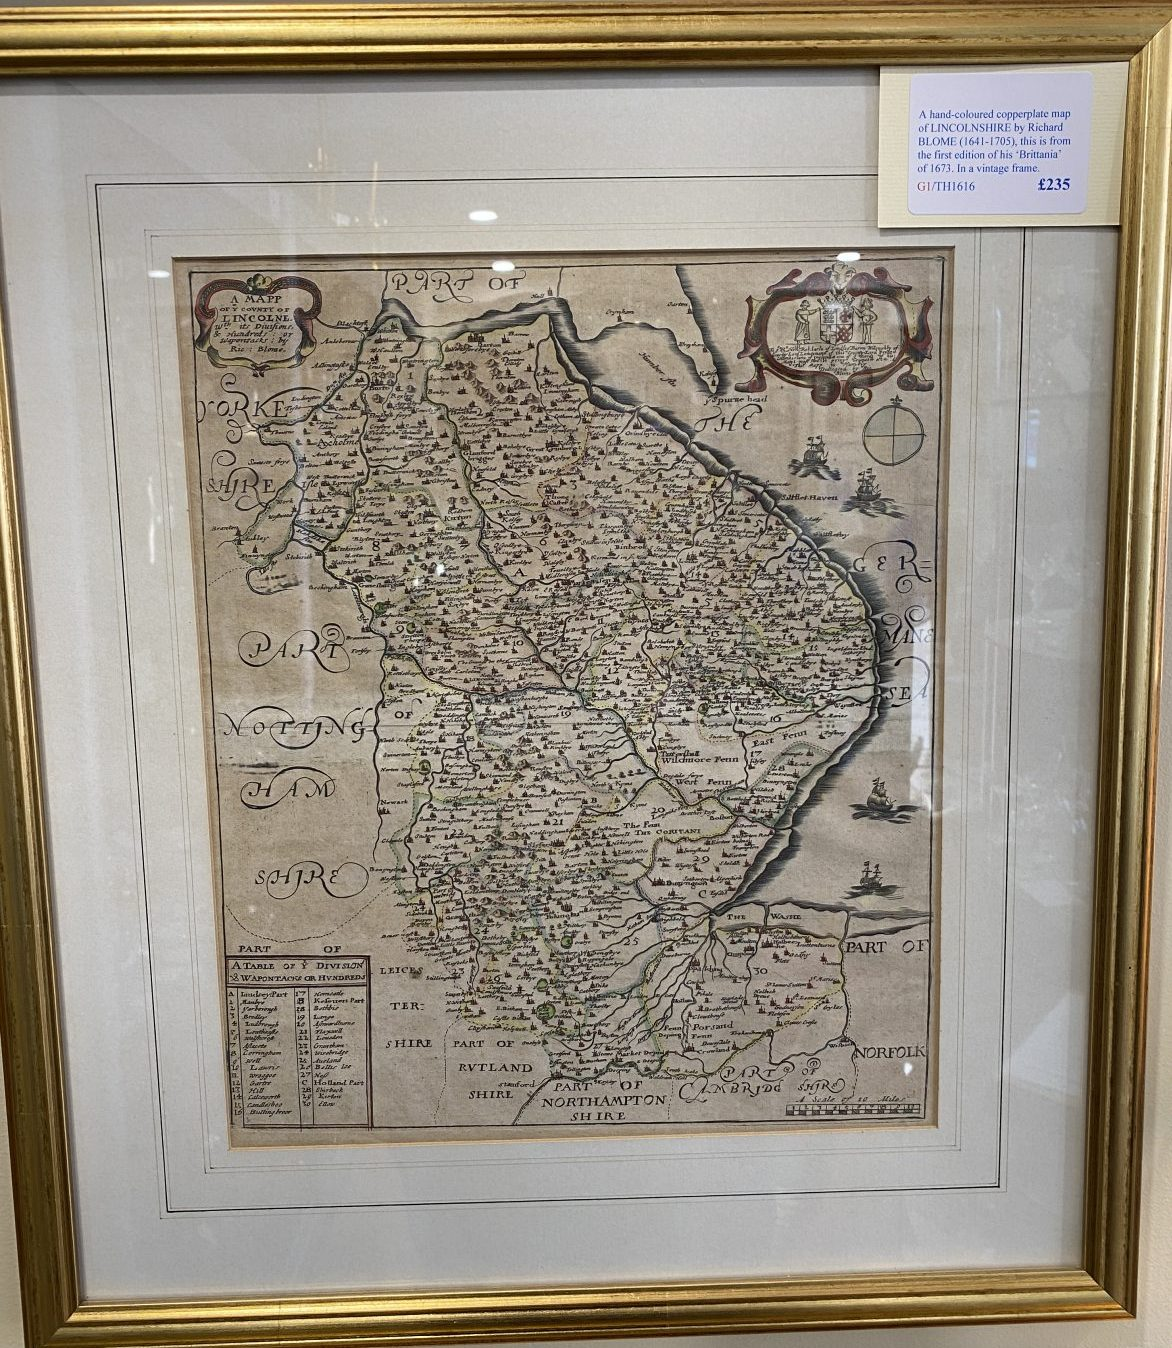 G1 - A hand-coloured copperplate map of LINCOLNSHIRE by Richard Blome (1641-1705) from his Britannia of 1673. In a vintage frame.  £235